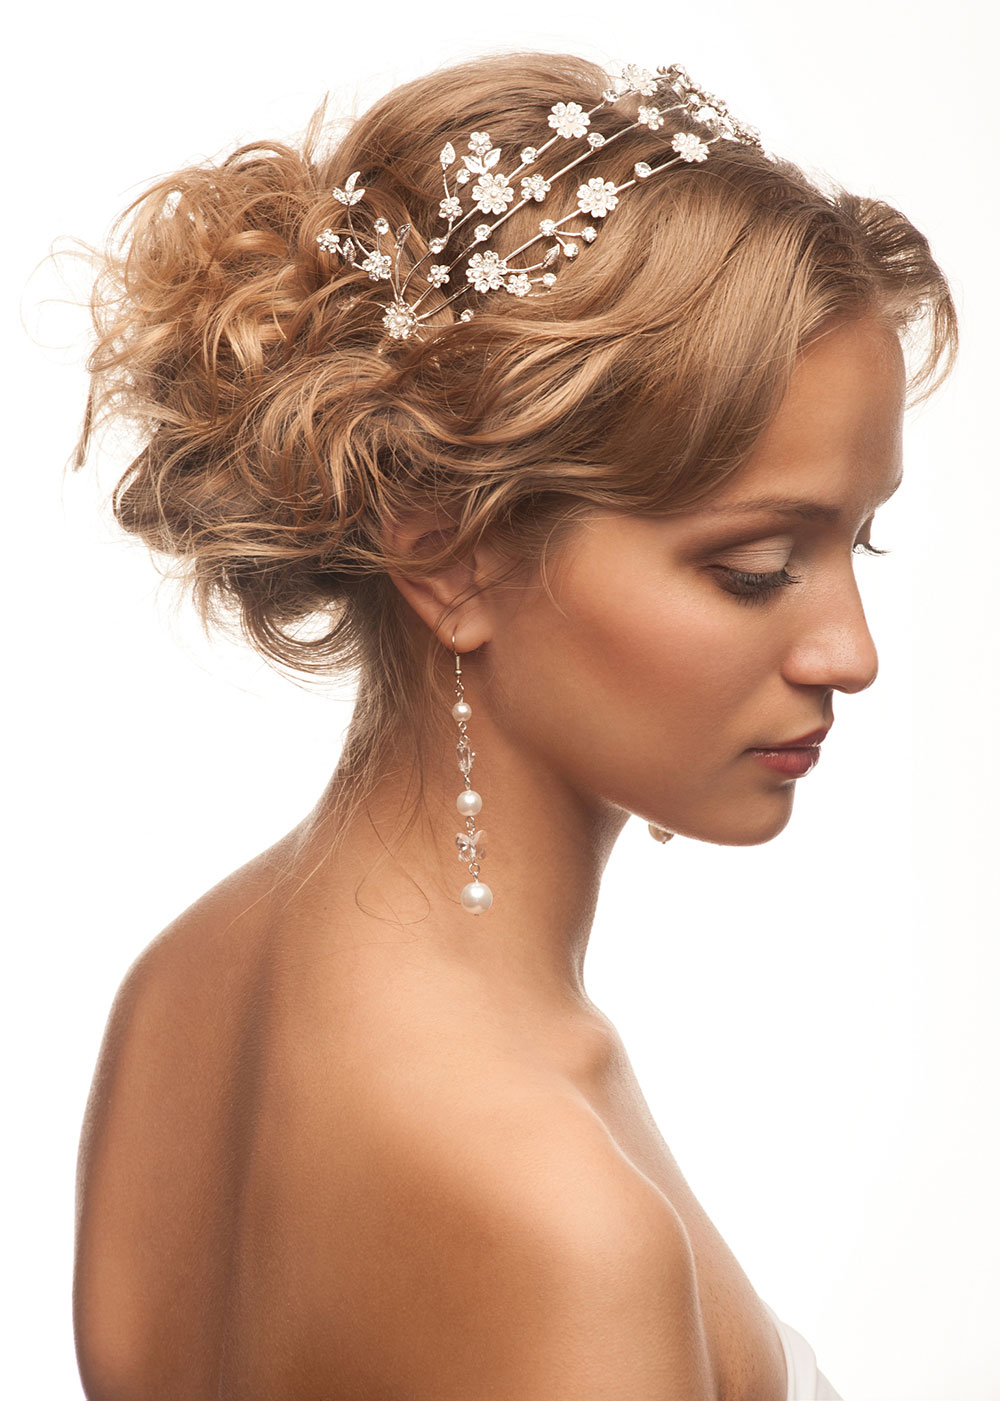 Messy side bun with accessories Wedding short hairstyle